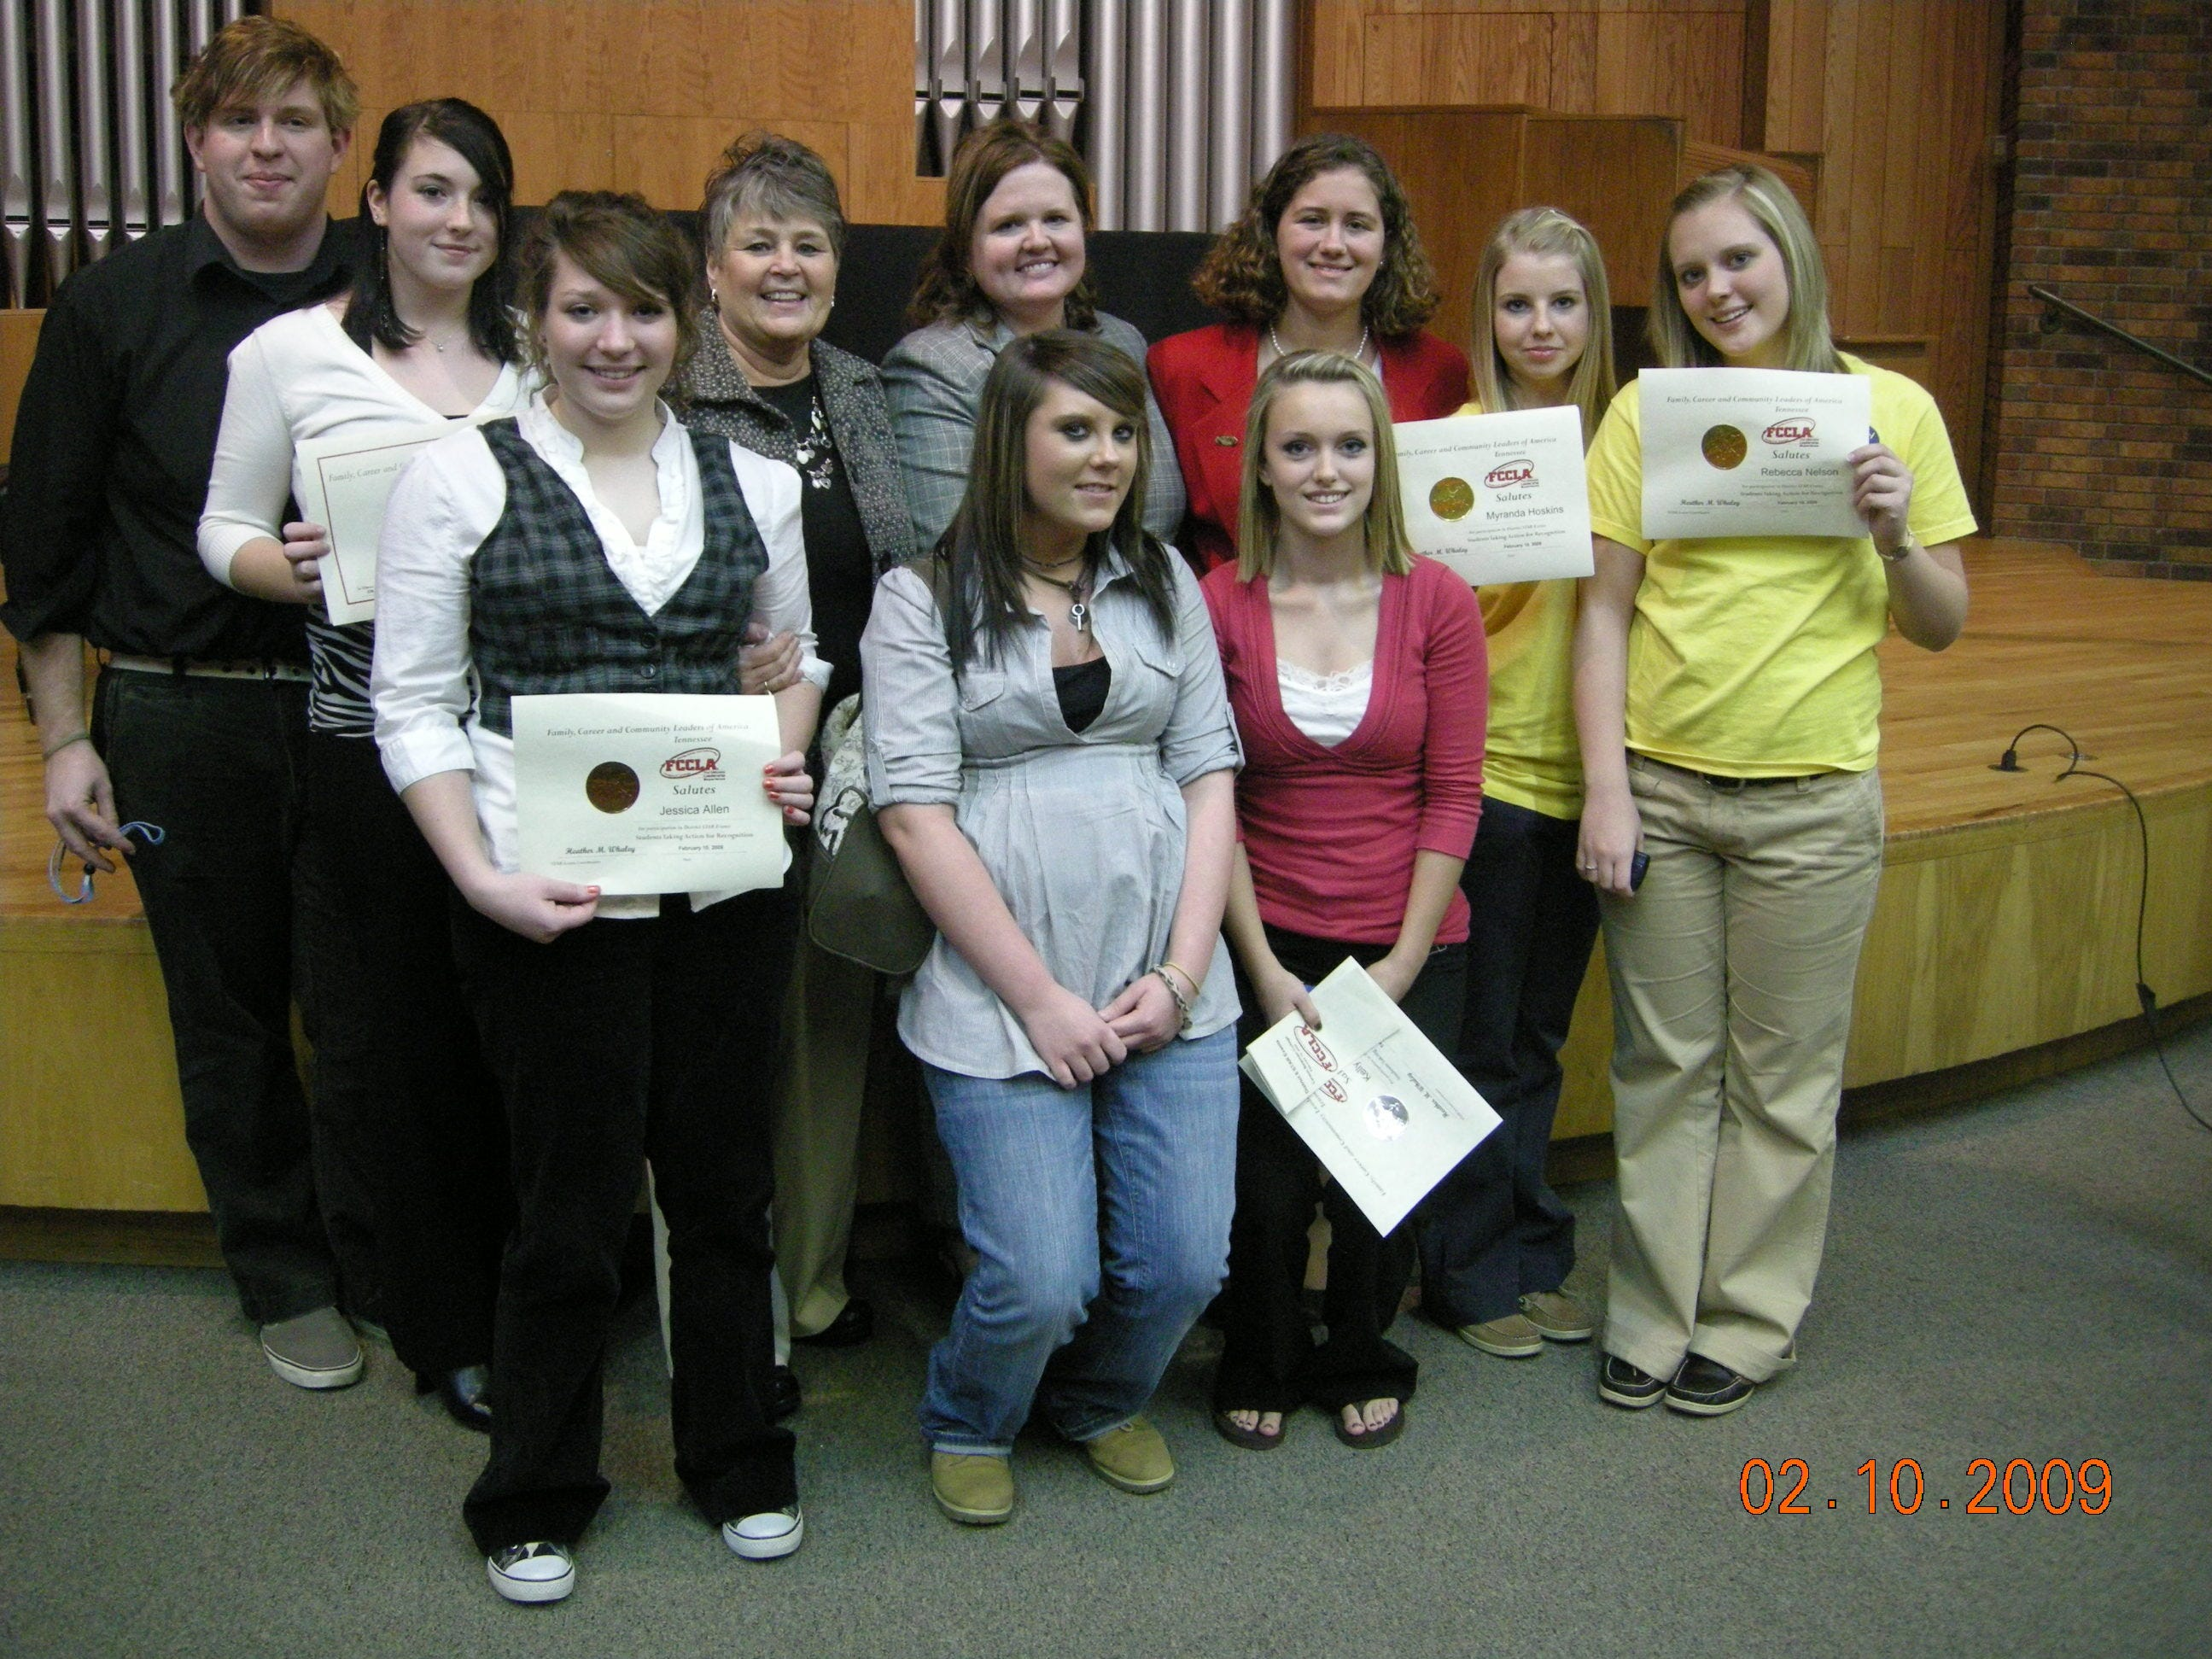 Campbell County Comprehensive High School Family, Career and Community Leaders of America club members scored big at the District 8 Students Taking Action with Recognition Competition at Carson Newman College. Pictured first row, from left, Savanna Allen and Kelly Carroll; second row, from left, Danny Wilhoit, Amber Alford, Jessica Allen, Sandy Gregory, Heather Whaley, Samantha Sutherland, Myranda Hoskins and Rebecca Nelson.